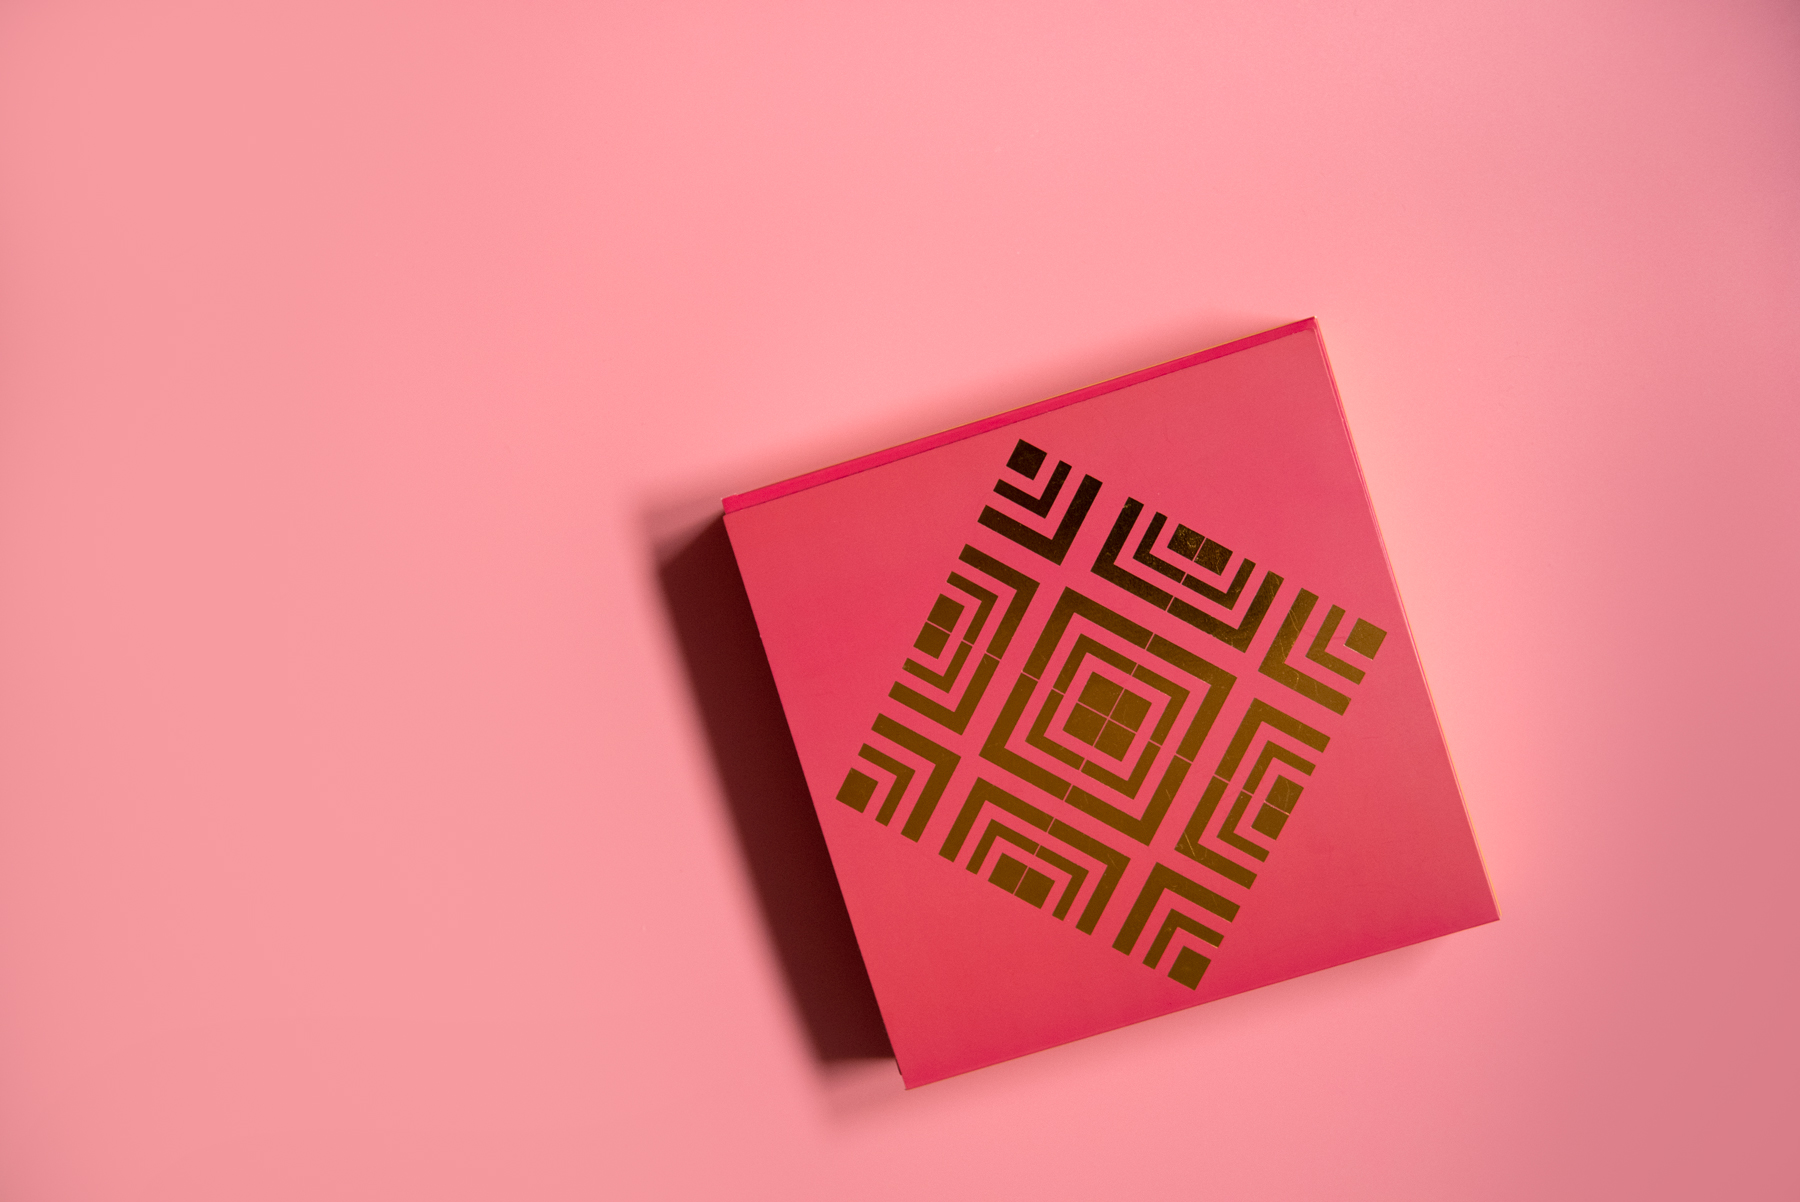 Boxed Packaging designed by Hire Henri Creative